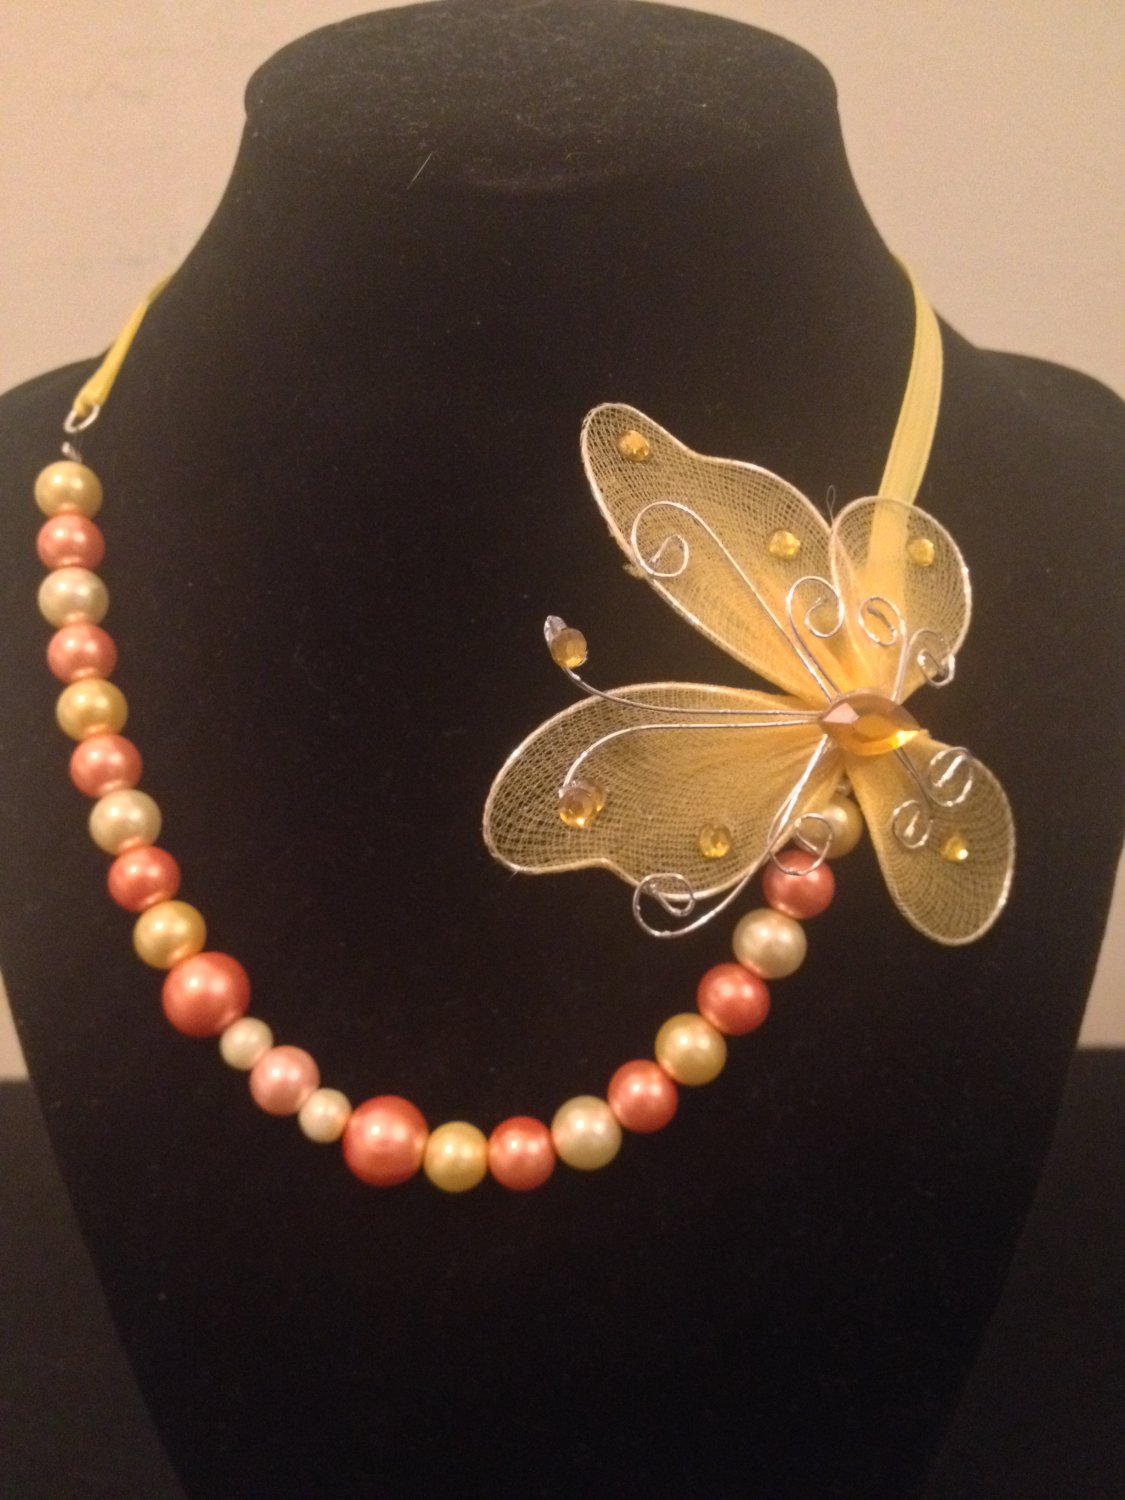 Ribbon and Pearl Necklace with Butterfly